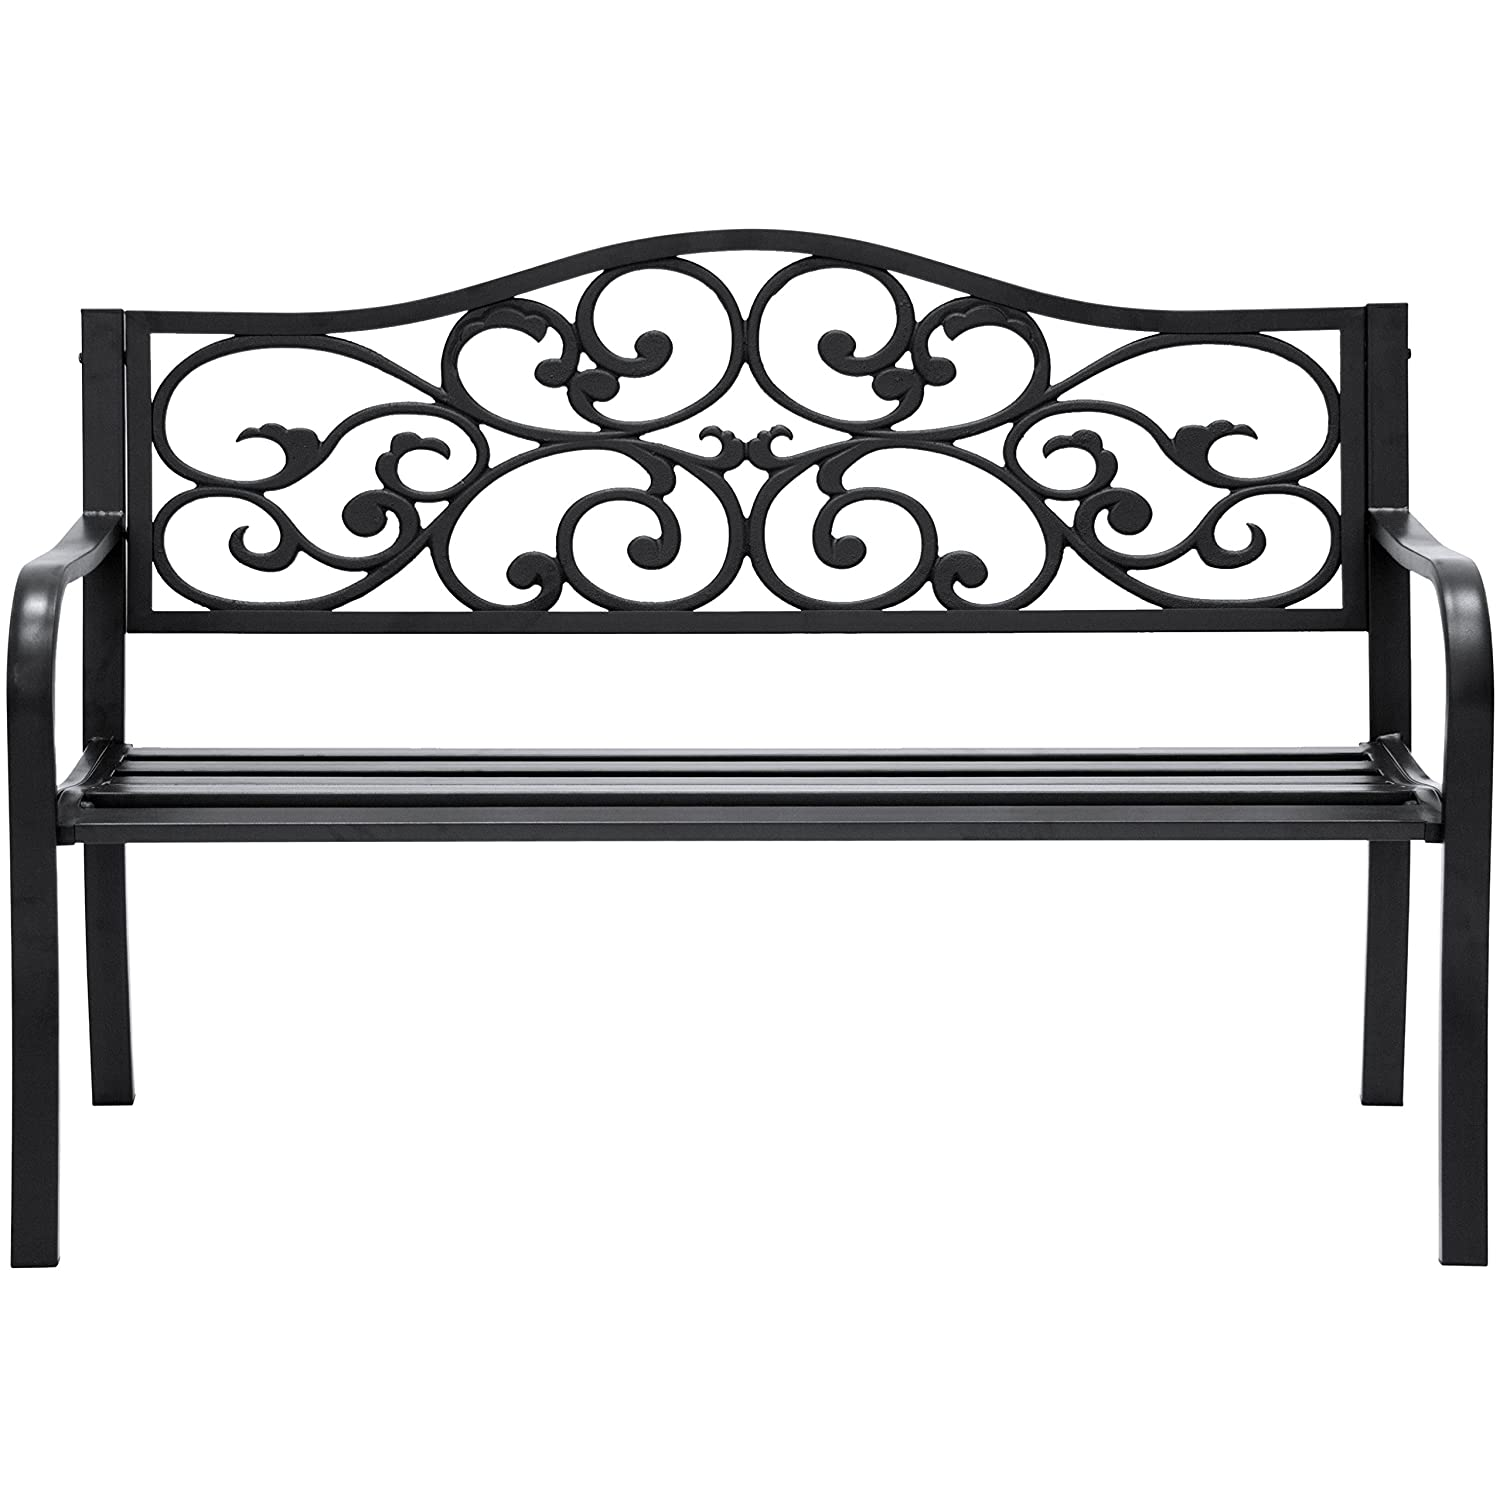 Best Choice Products 50-inch Classic Metal Garden Bench with Verdi Floral Scroll Design, Black